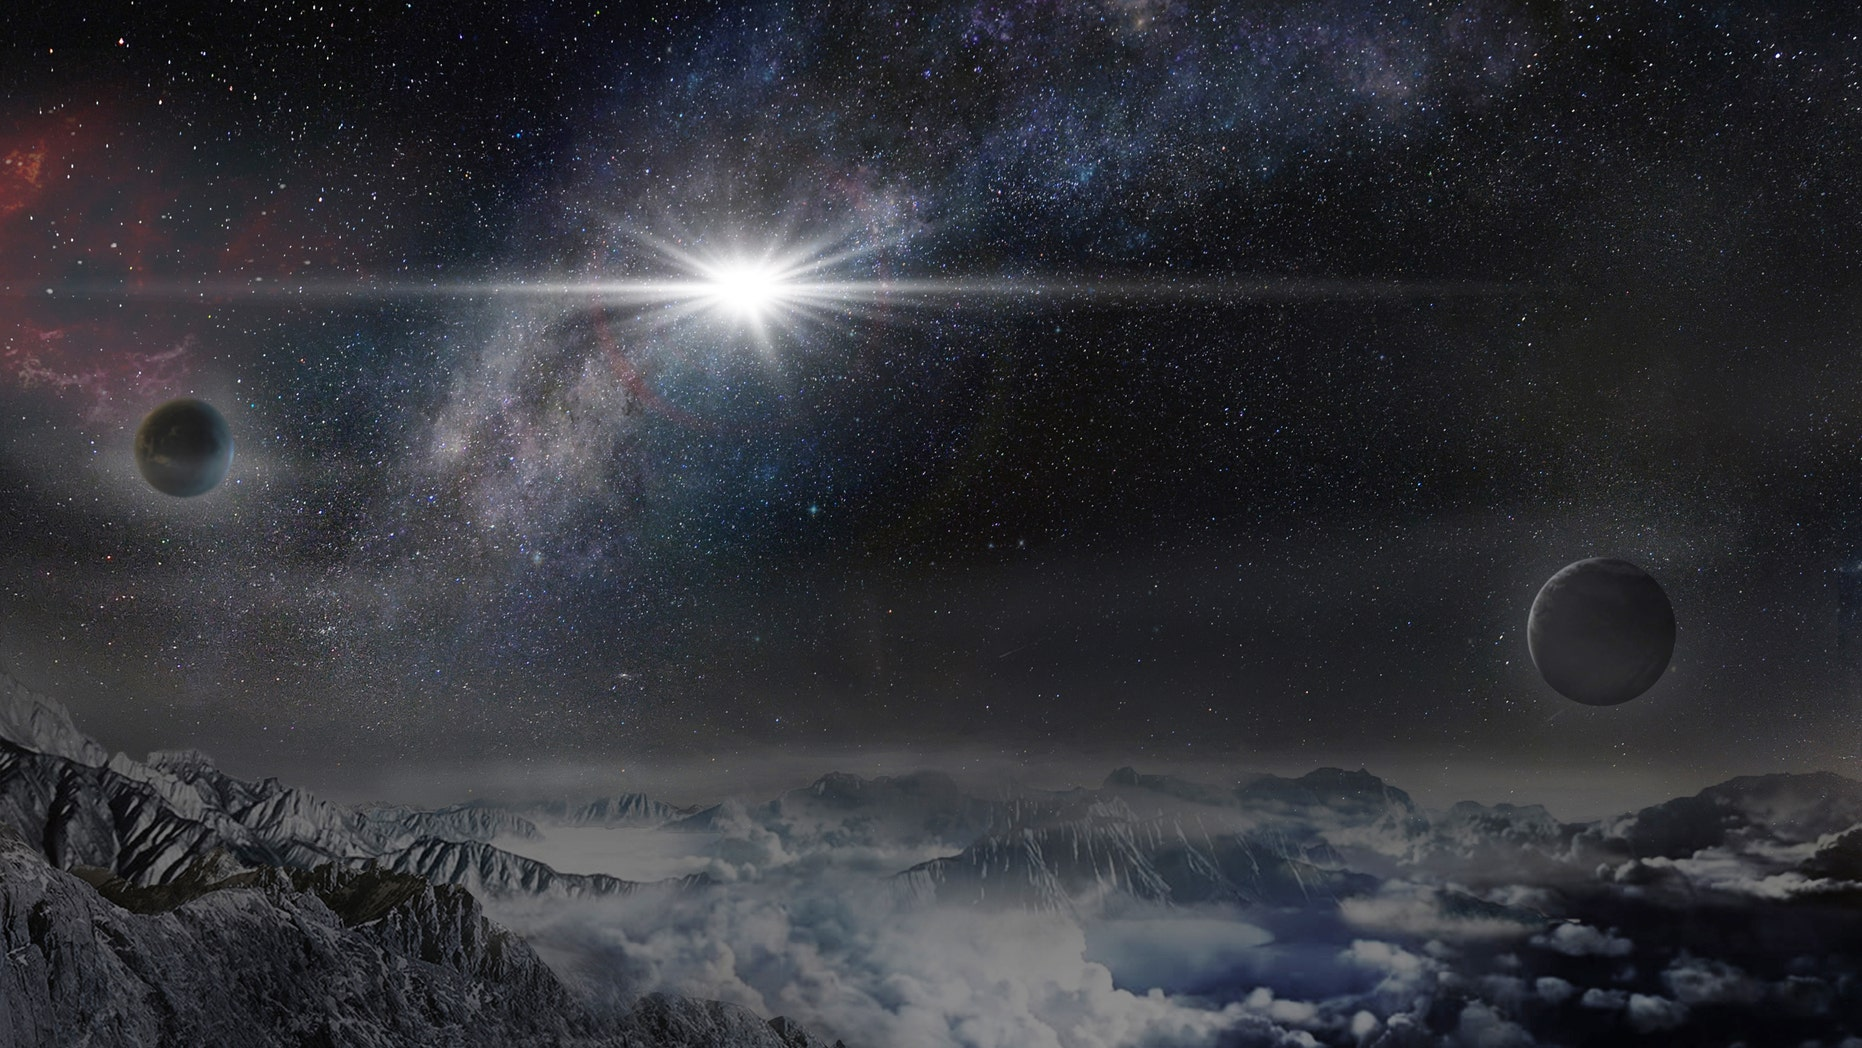 An artist's impression of the record-breakingly powerful, superluminous supernova ASASSN- 15lh as it would appear from an exoplanet located about 10,000 light years away in the host galaxy of the supernova. (Beijing Planetarium / Jin Ma))